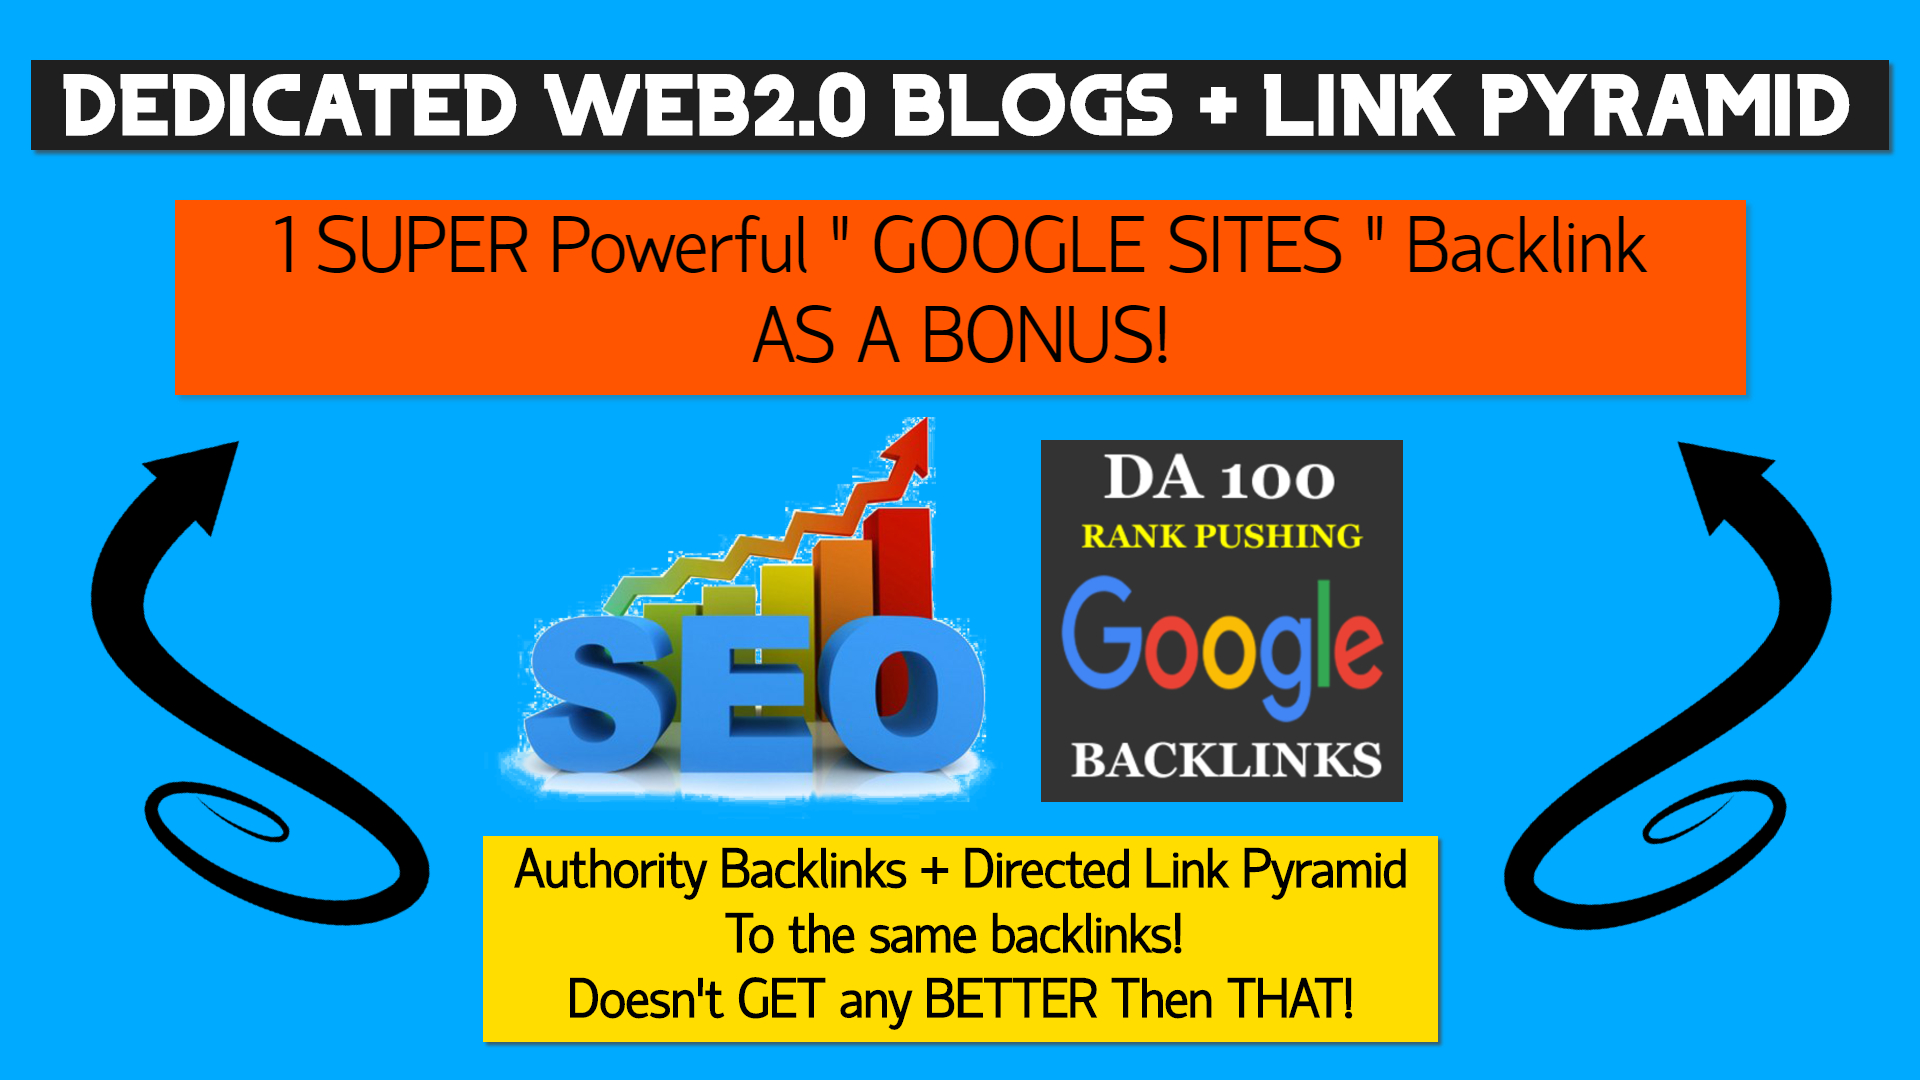 Land Up To Top 5 On Google V3 - WEB2.0 + LINK PYRAMID